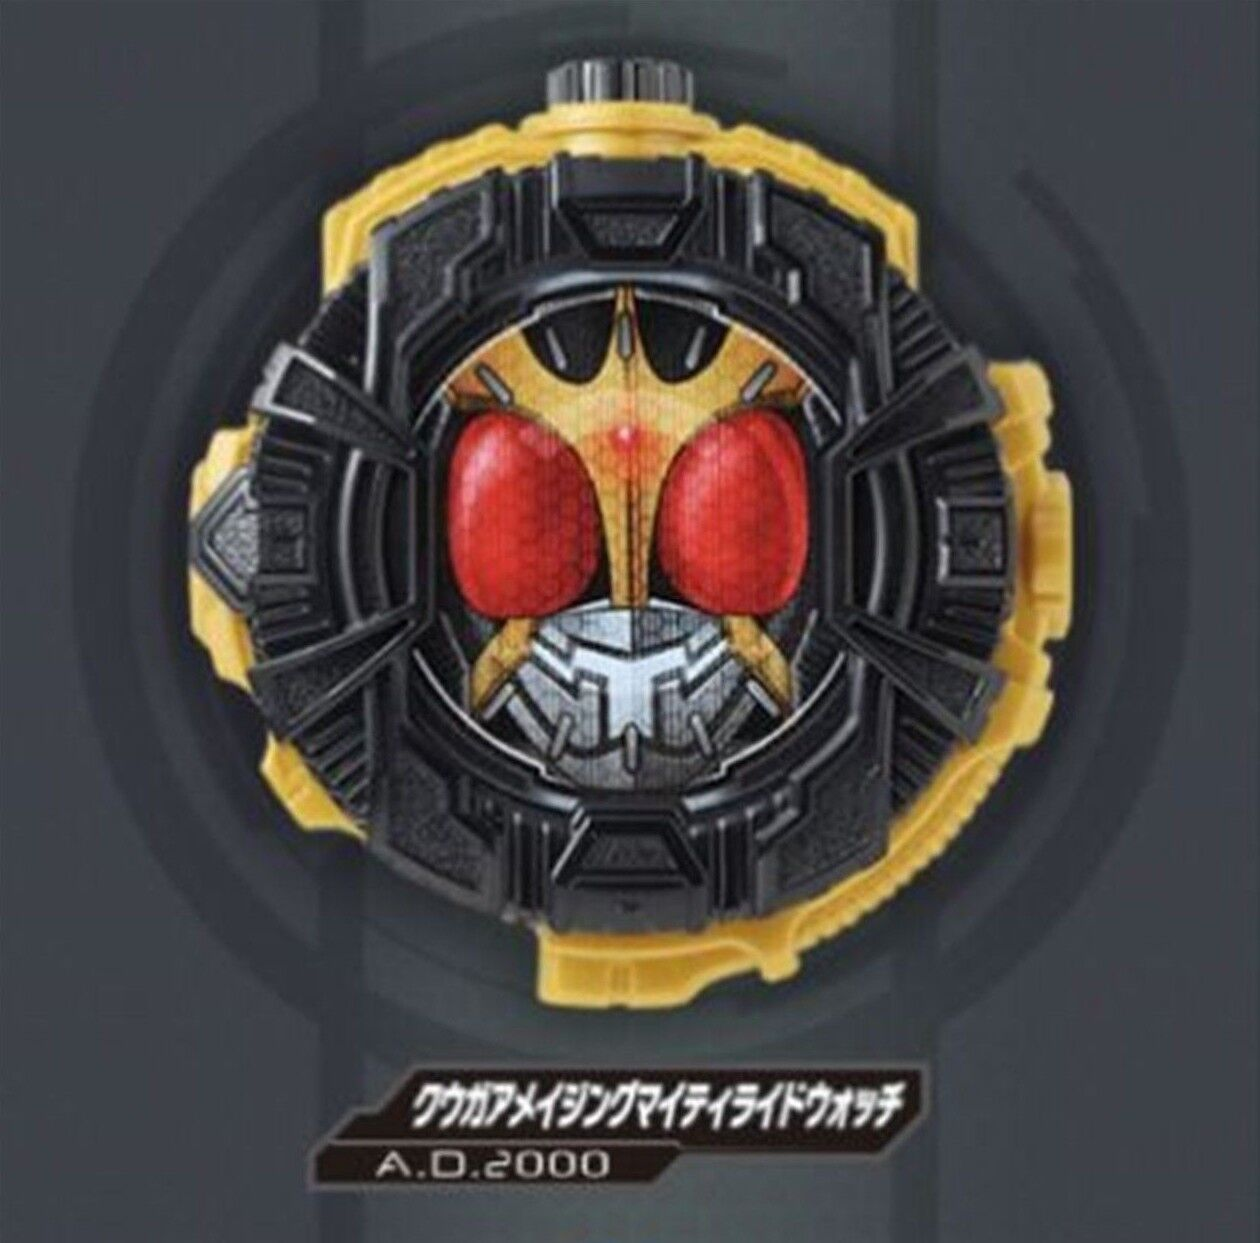 Kamän Rider ZI -O KUUGA AMAZING MIGHTY ridwatch magazine begränsad ride watch